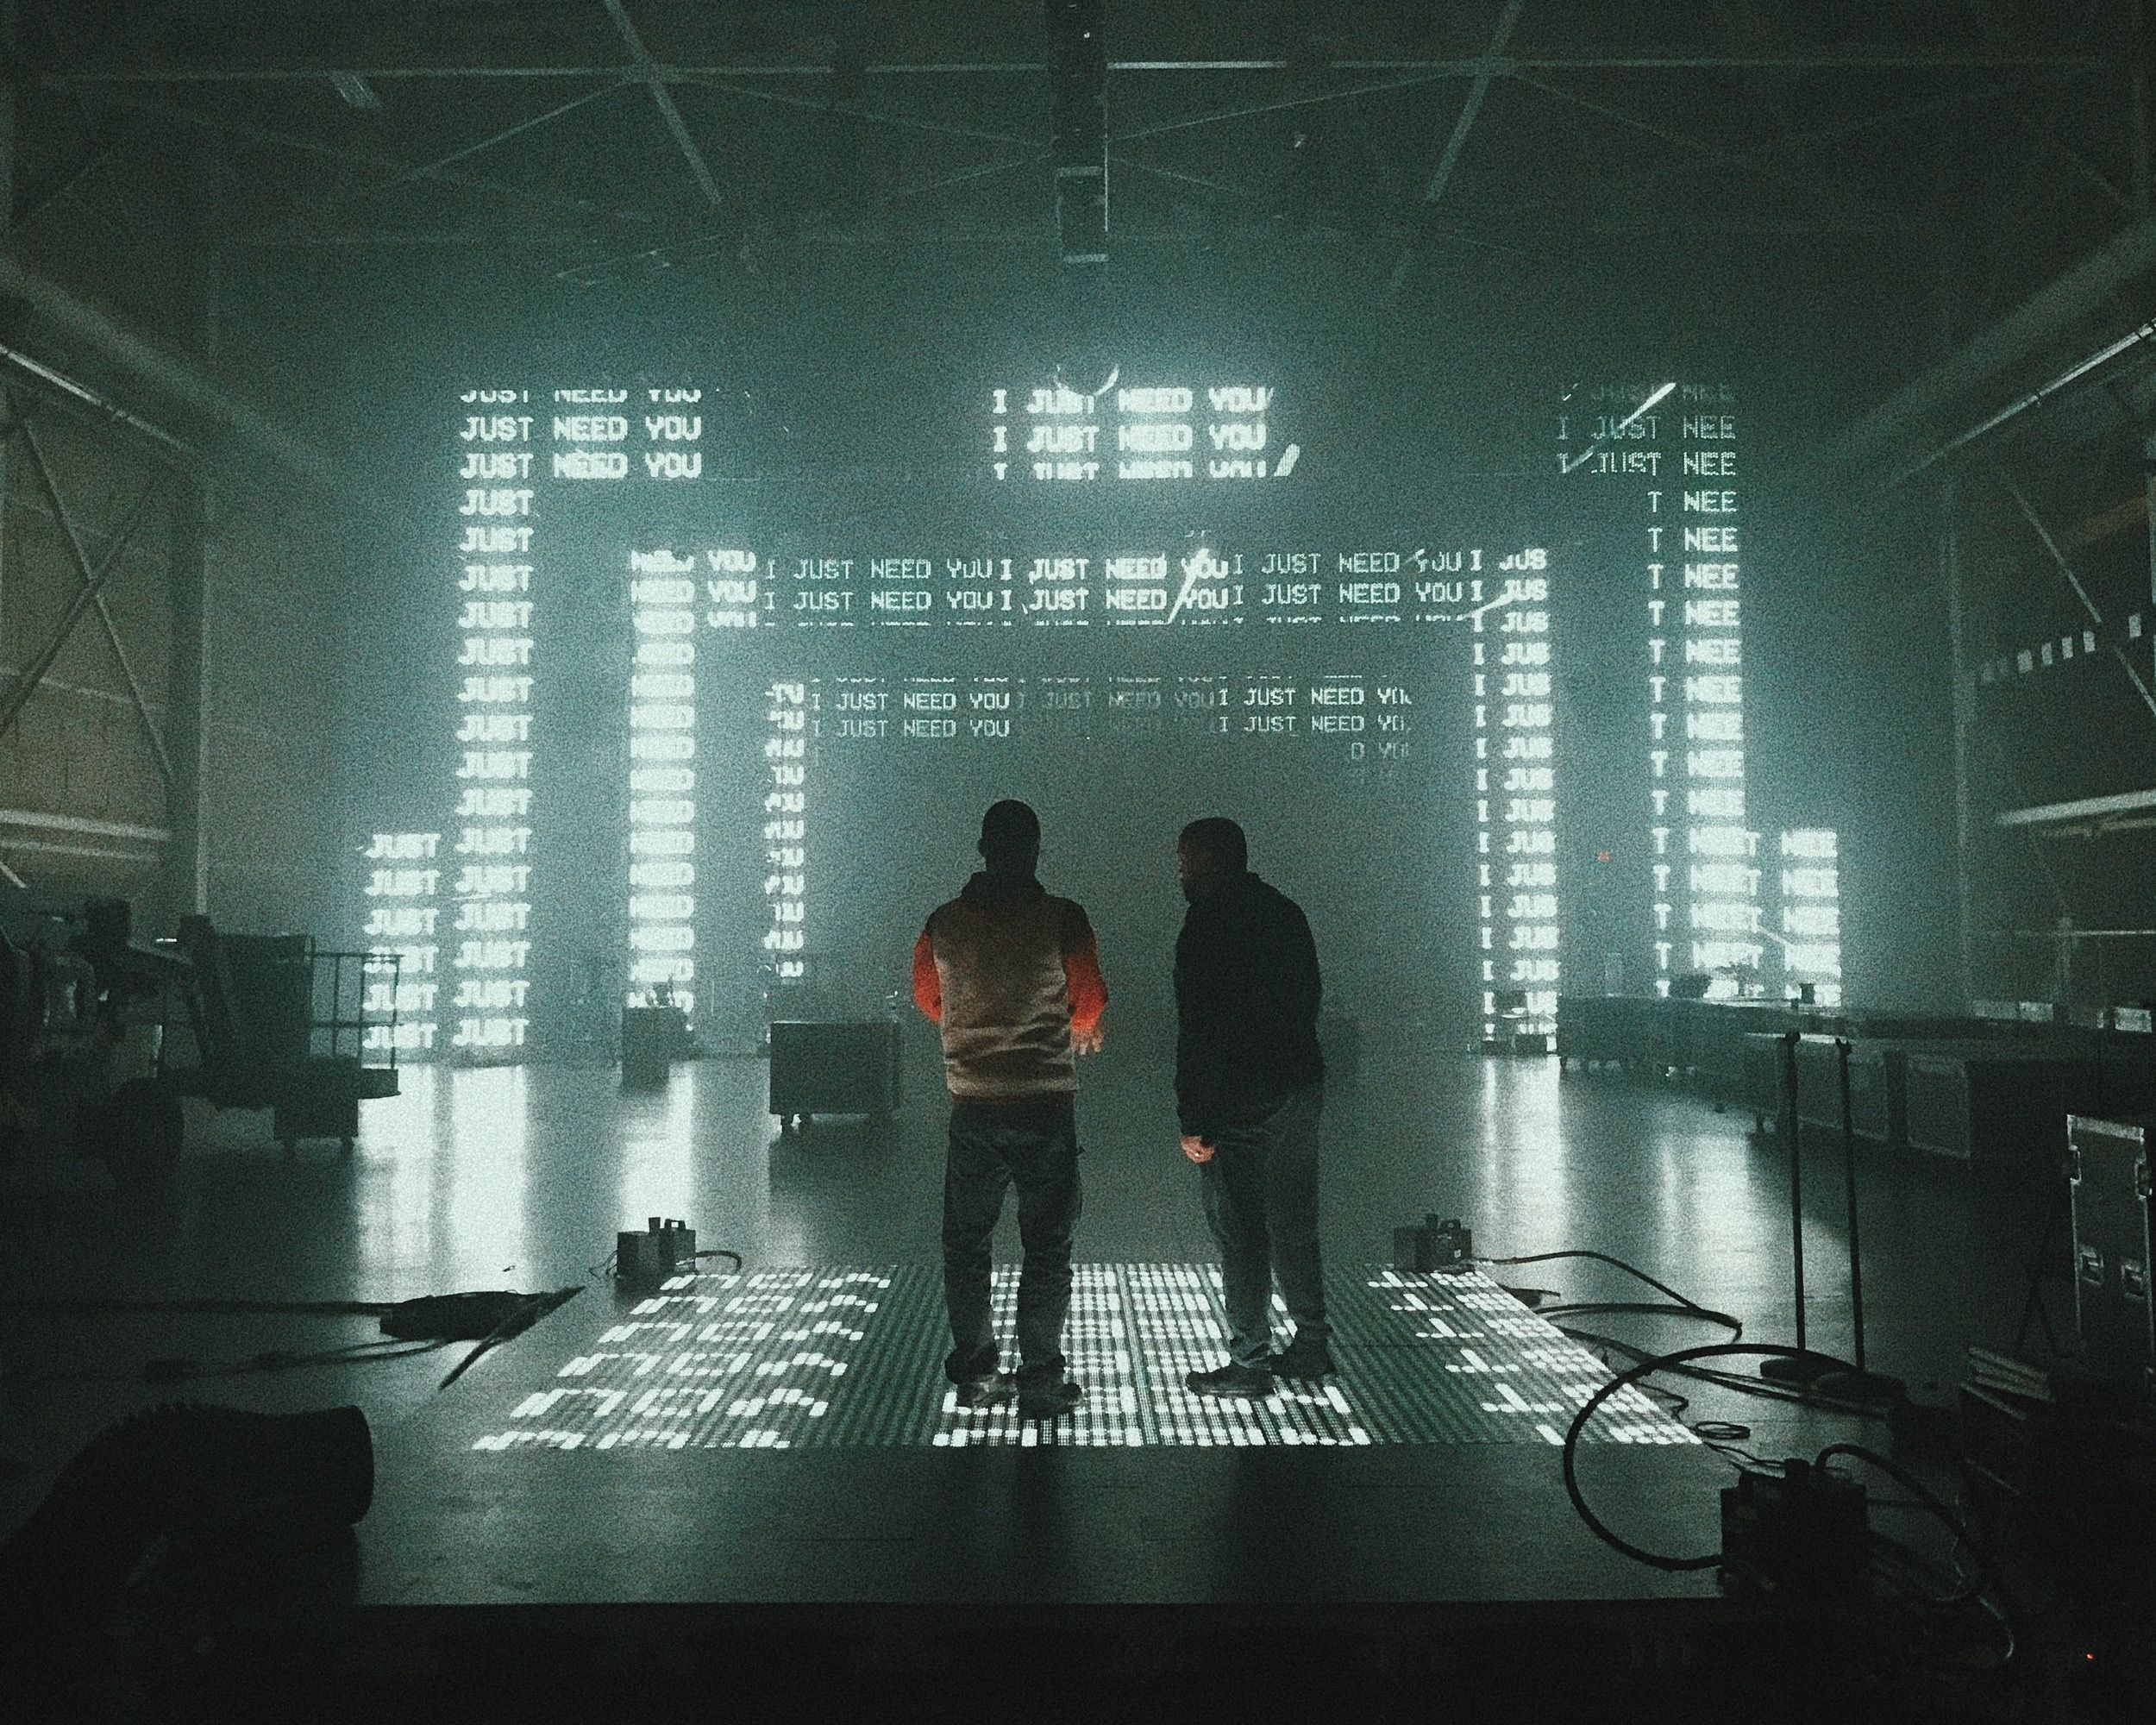 """Tour visuals created for Toby Mac's """"Hits Deep"""" tour 2019"""